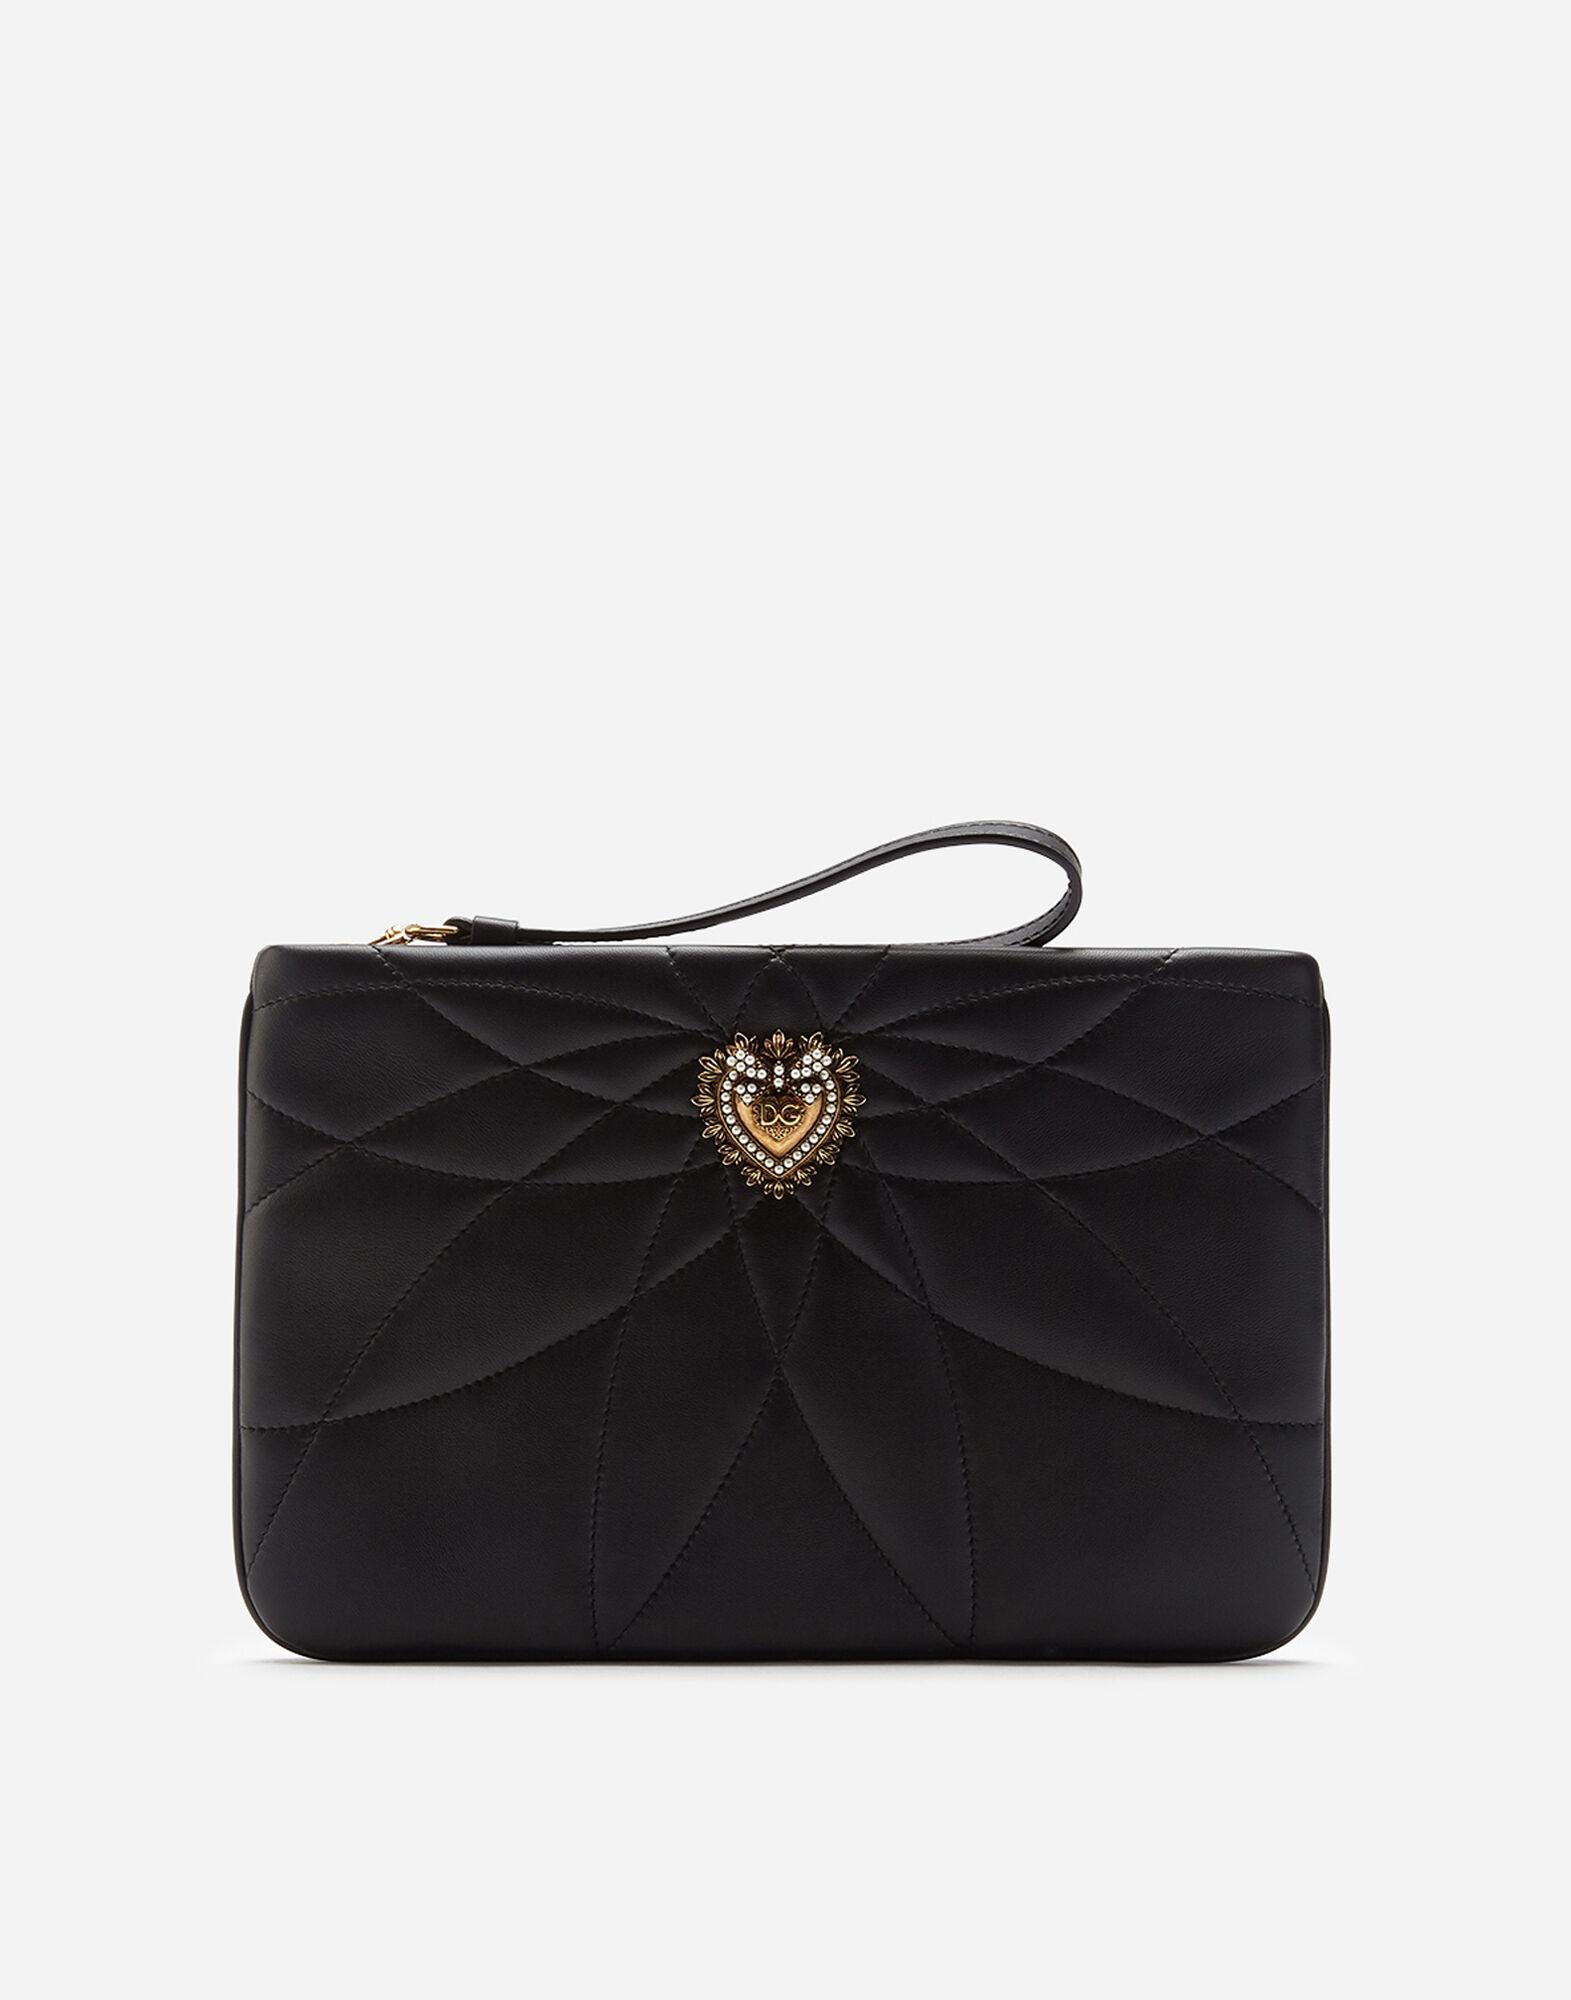 Quilted nappa leather Devotion clutch